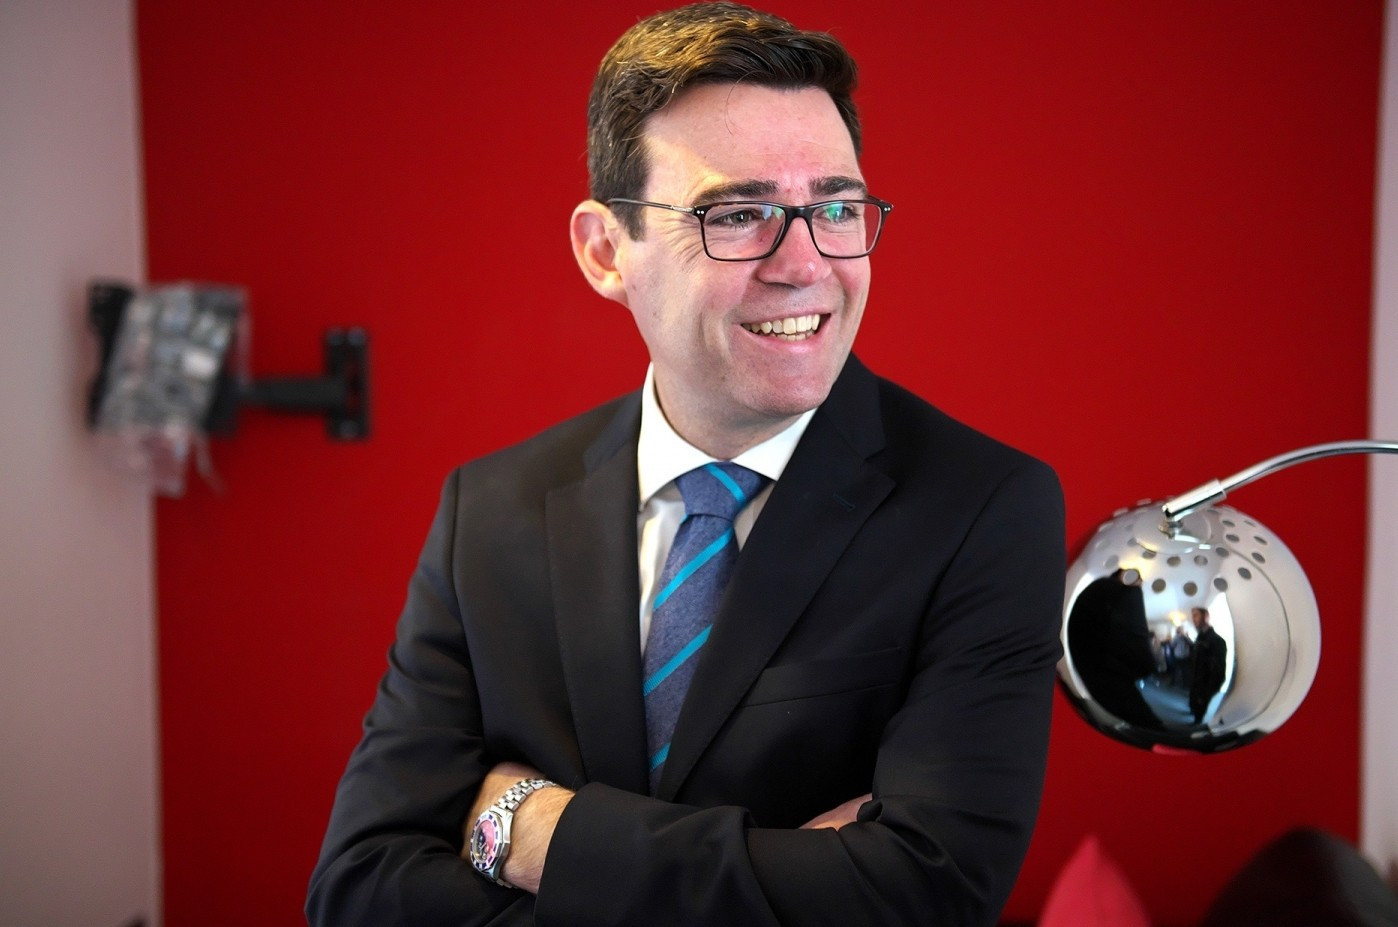 Andy Burnham, the current Mayor of Manchester, is the new President of the Rugby Football League ©rugby-league.com